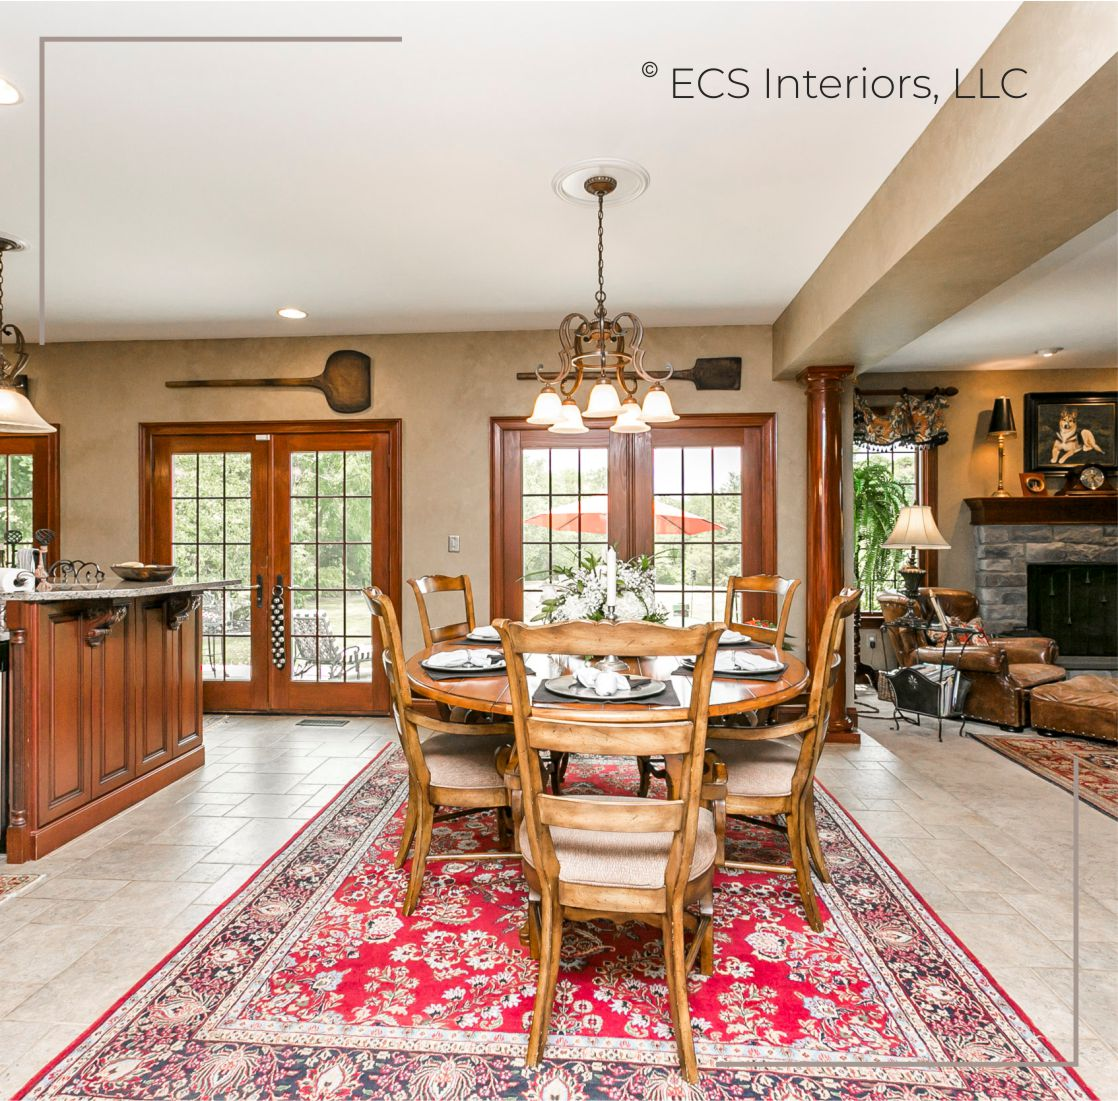 Custom Breakfast Nook Hand Knotted Persian Wool Rug Century Cherry Drop Leaf Table Fresh Floral ECS Interiors